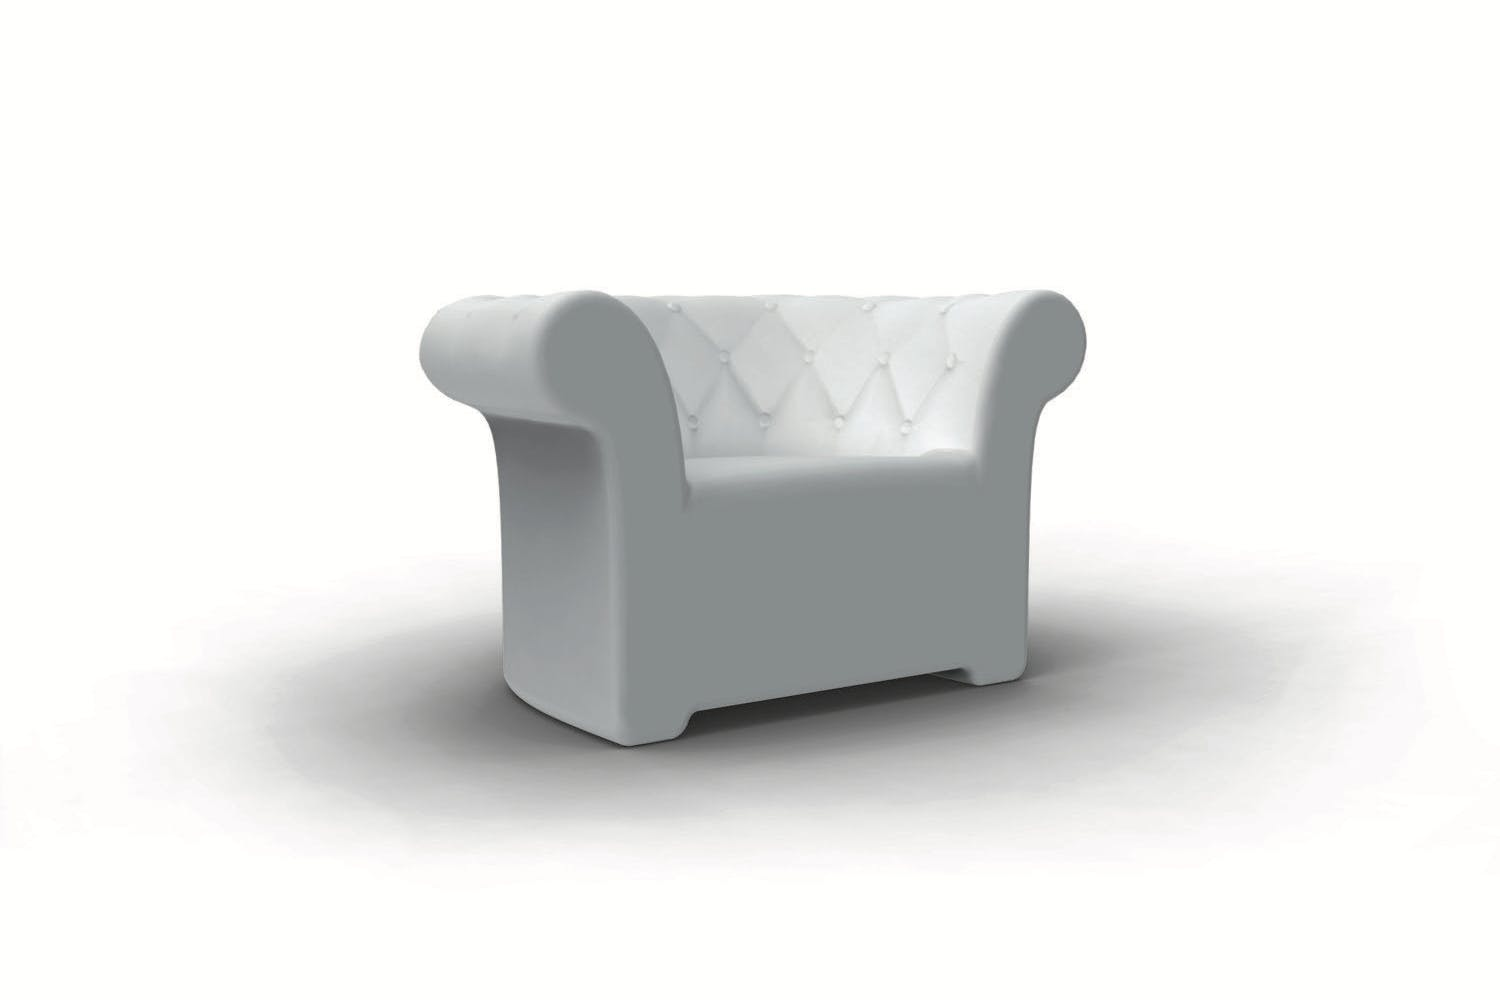 Sirchester armchair by deepdesign for serralunga space for Serralunga furniture